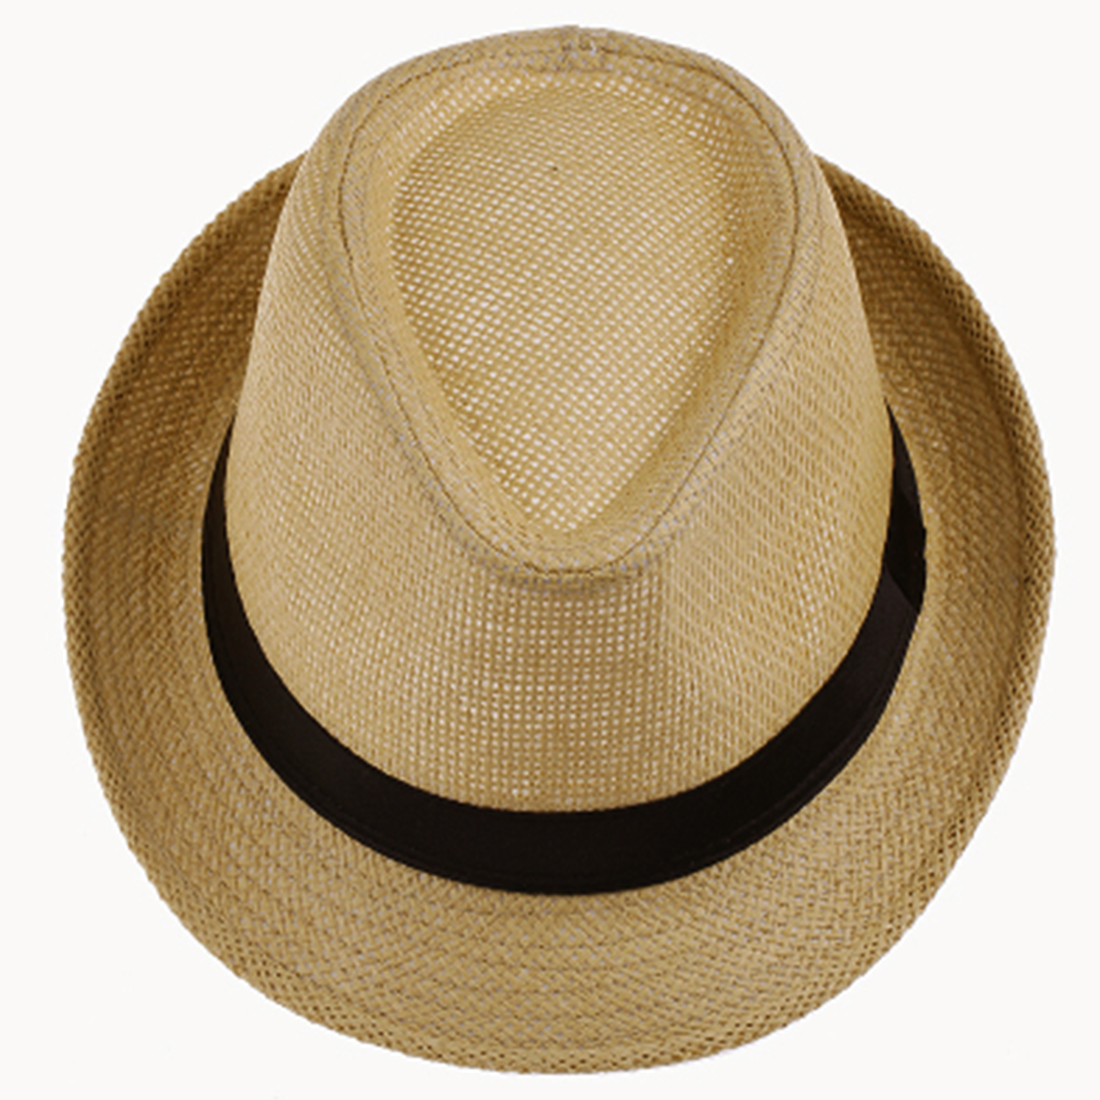 1pc Summer Cap Ribbon Unisex Women Men Fashion Summer Casual Trendy Beach Sun Straw Jazz Hat Cowboy Fedora hat Gangster in Women 39 s Sun Hats from Apparel Accessories